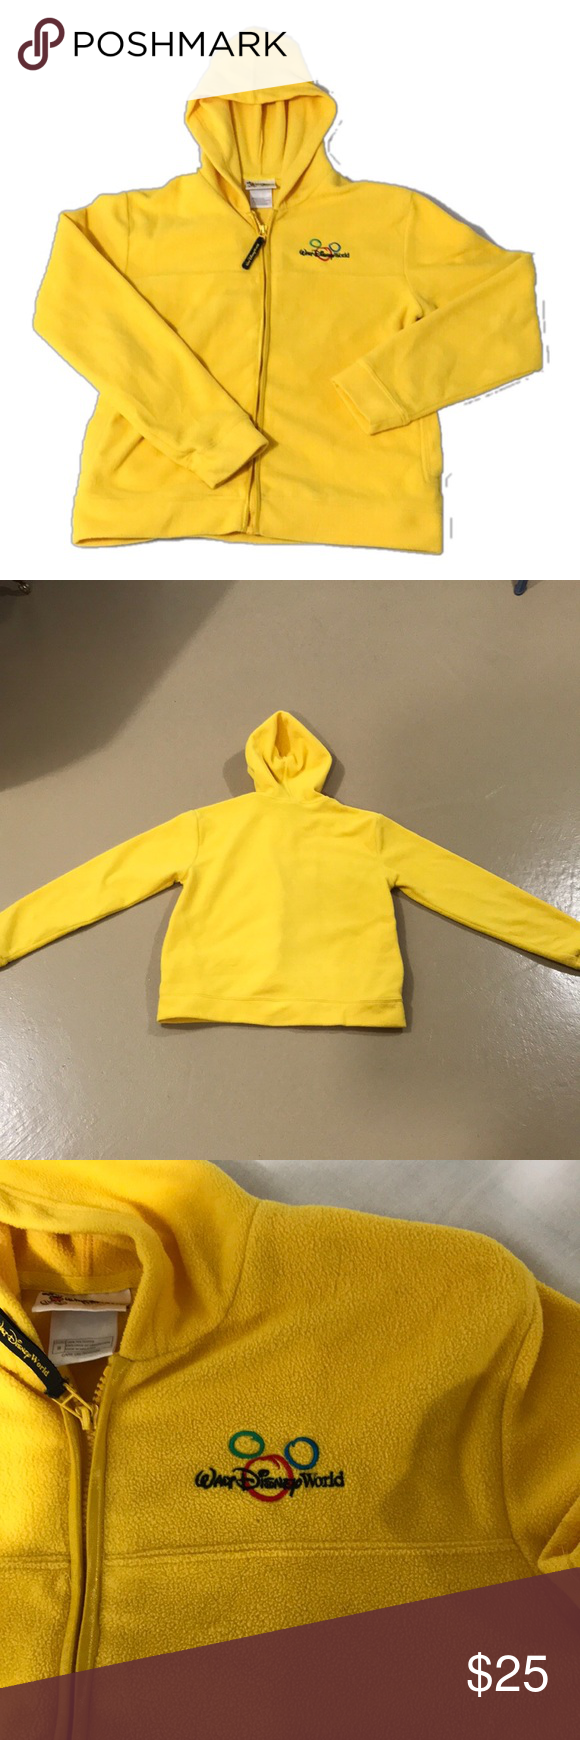 Disney world zipup yellow fleece jacket size s zip conditioning